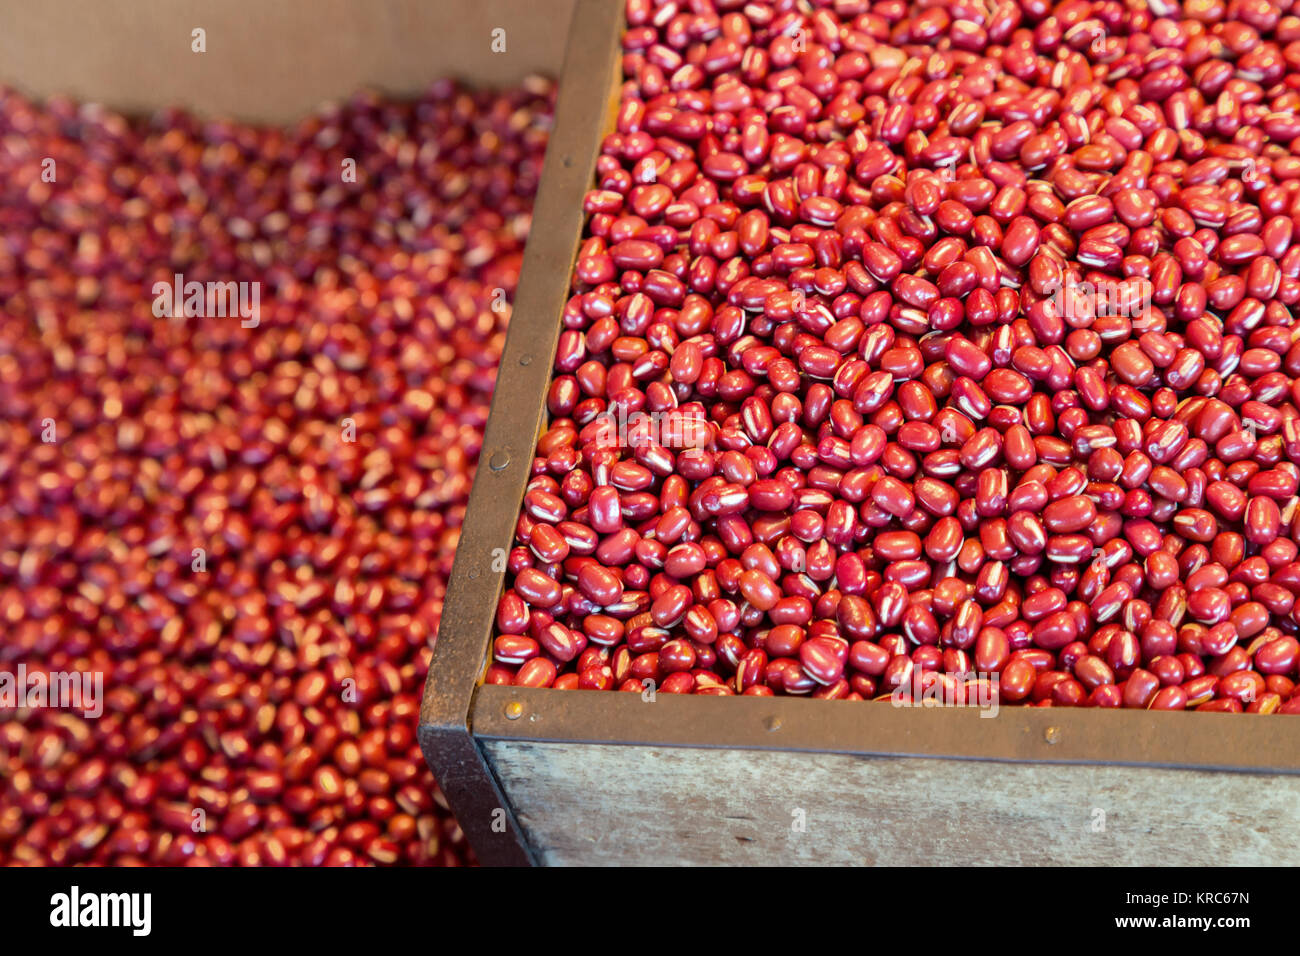 red kidney beans raw in the wooden box ready to sell on the market. organic grains food, Japanese calls Adzuki or - Stock Image